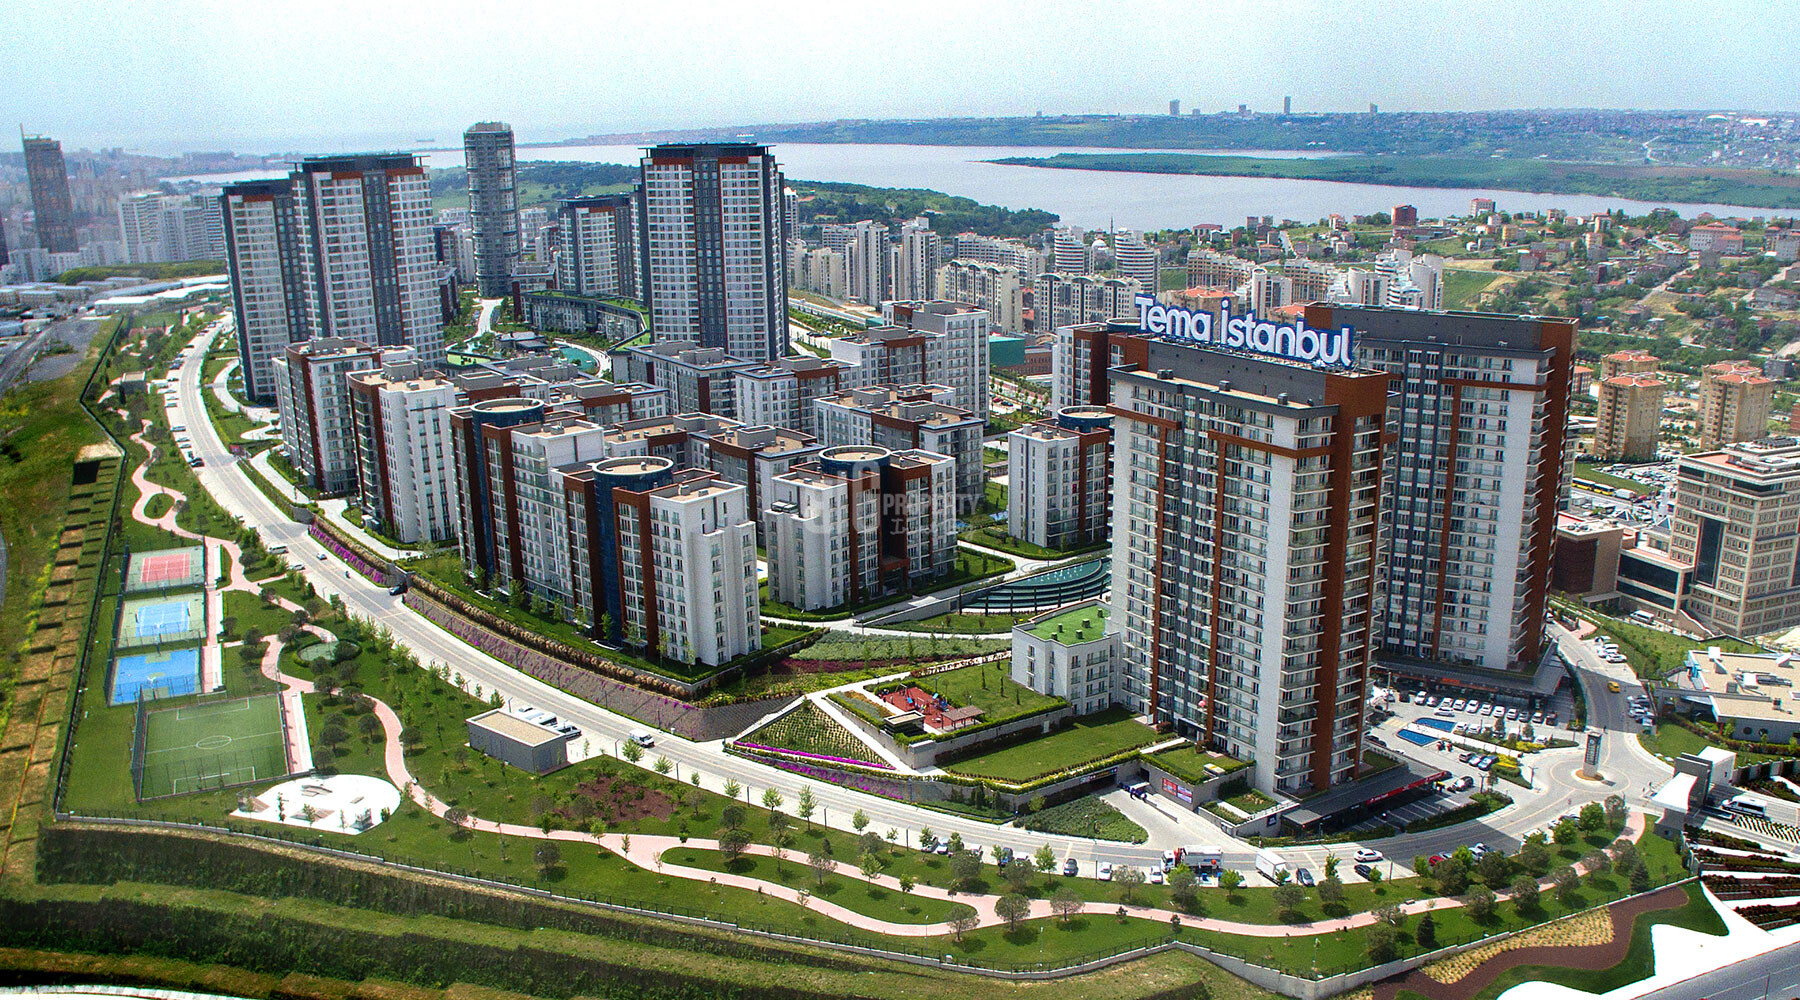 Kucukcekmece region for real estate investment